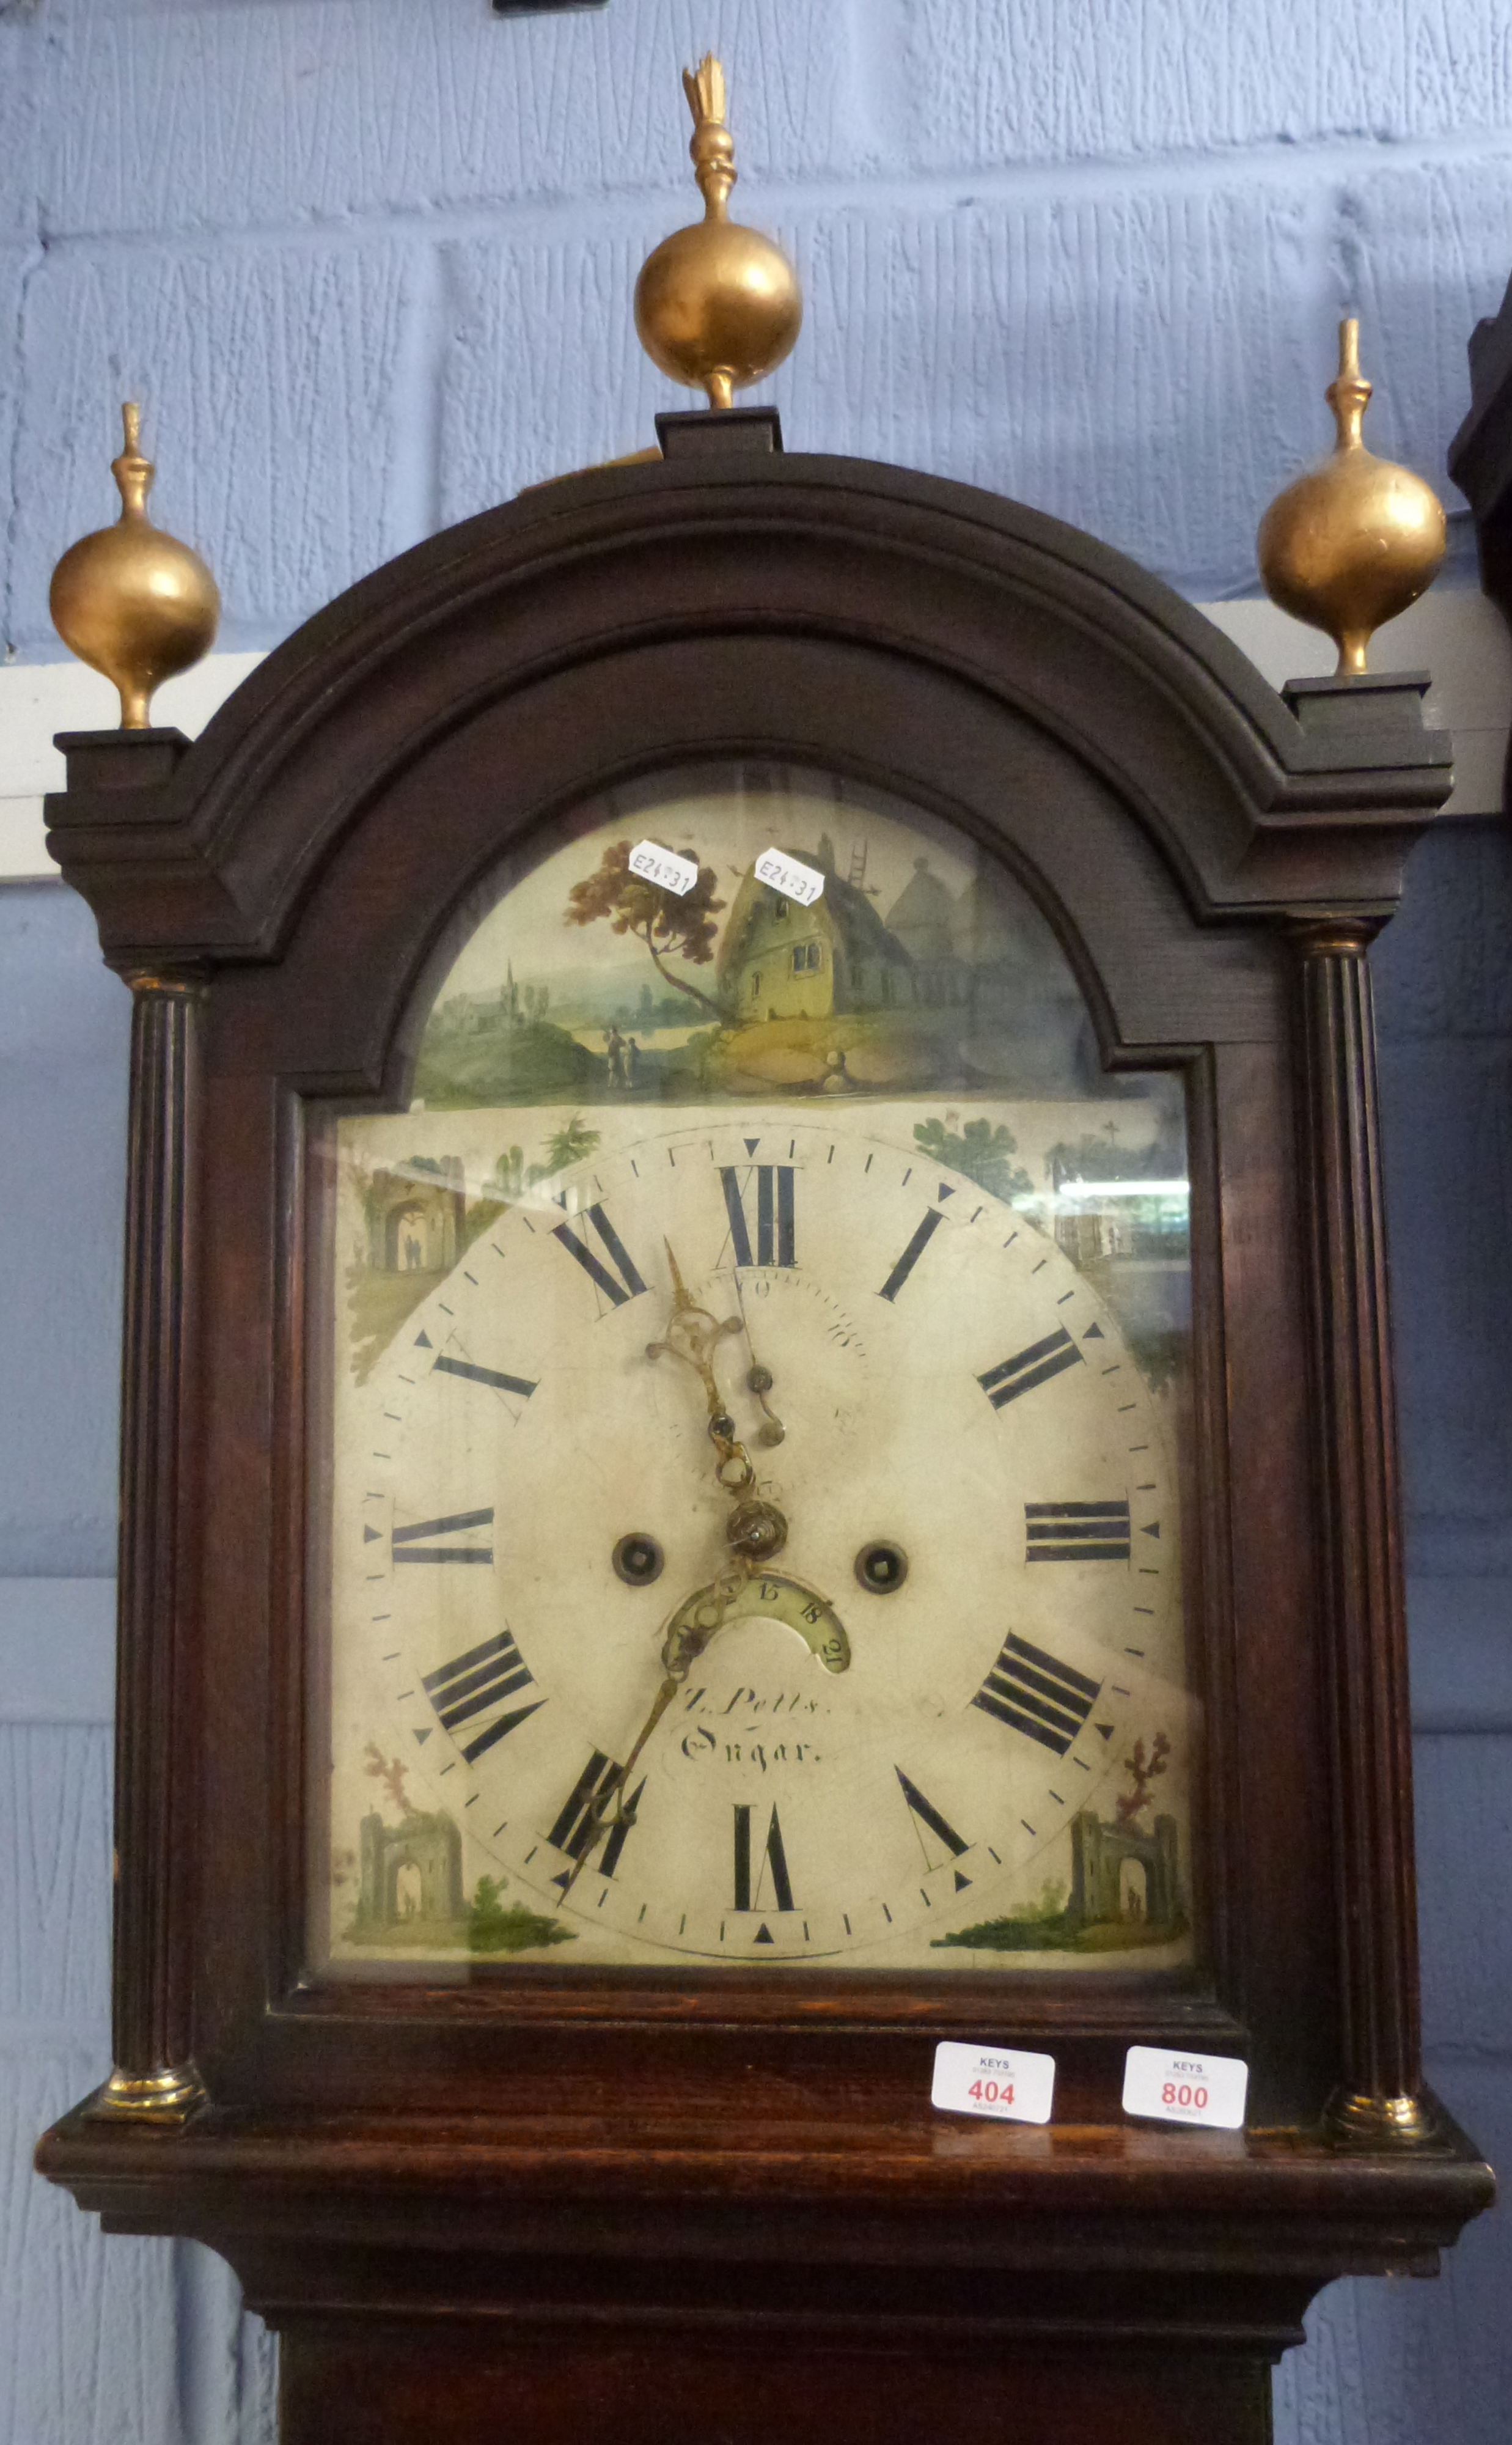 Oak longcase clock with hand painted face depicting various countryside scenes around Roman dial - Image 2 of 2